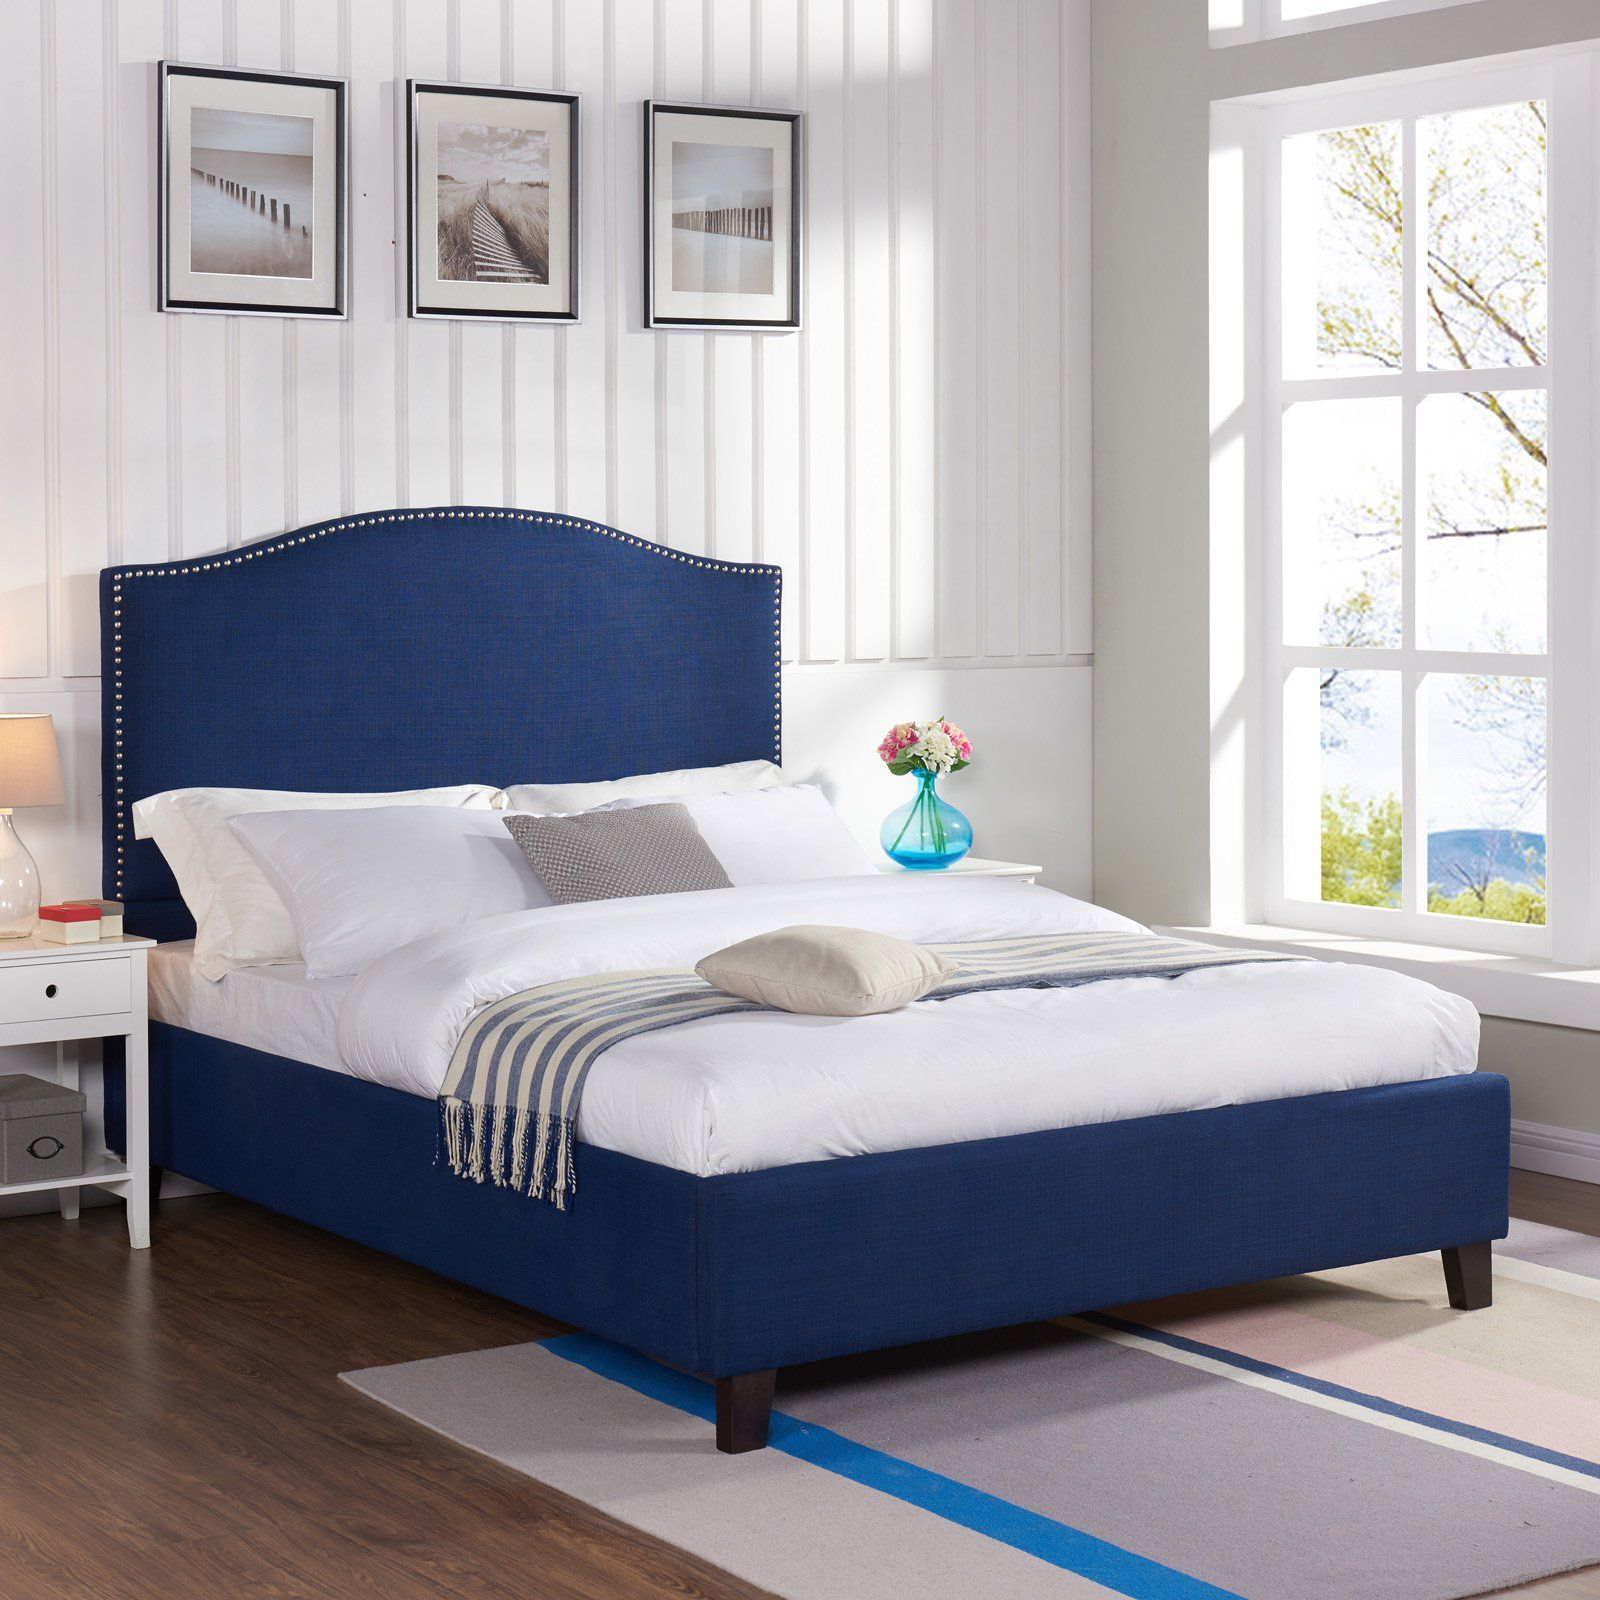 Better Homes and Gardens Grayson Upholstered Platform Bed